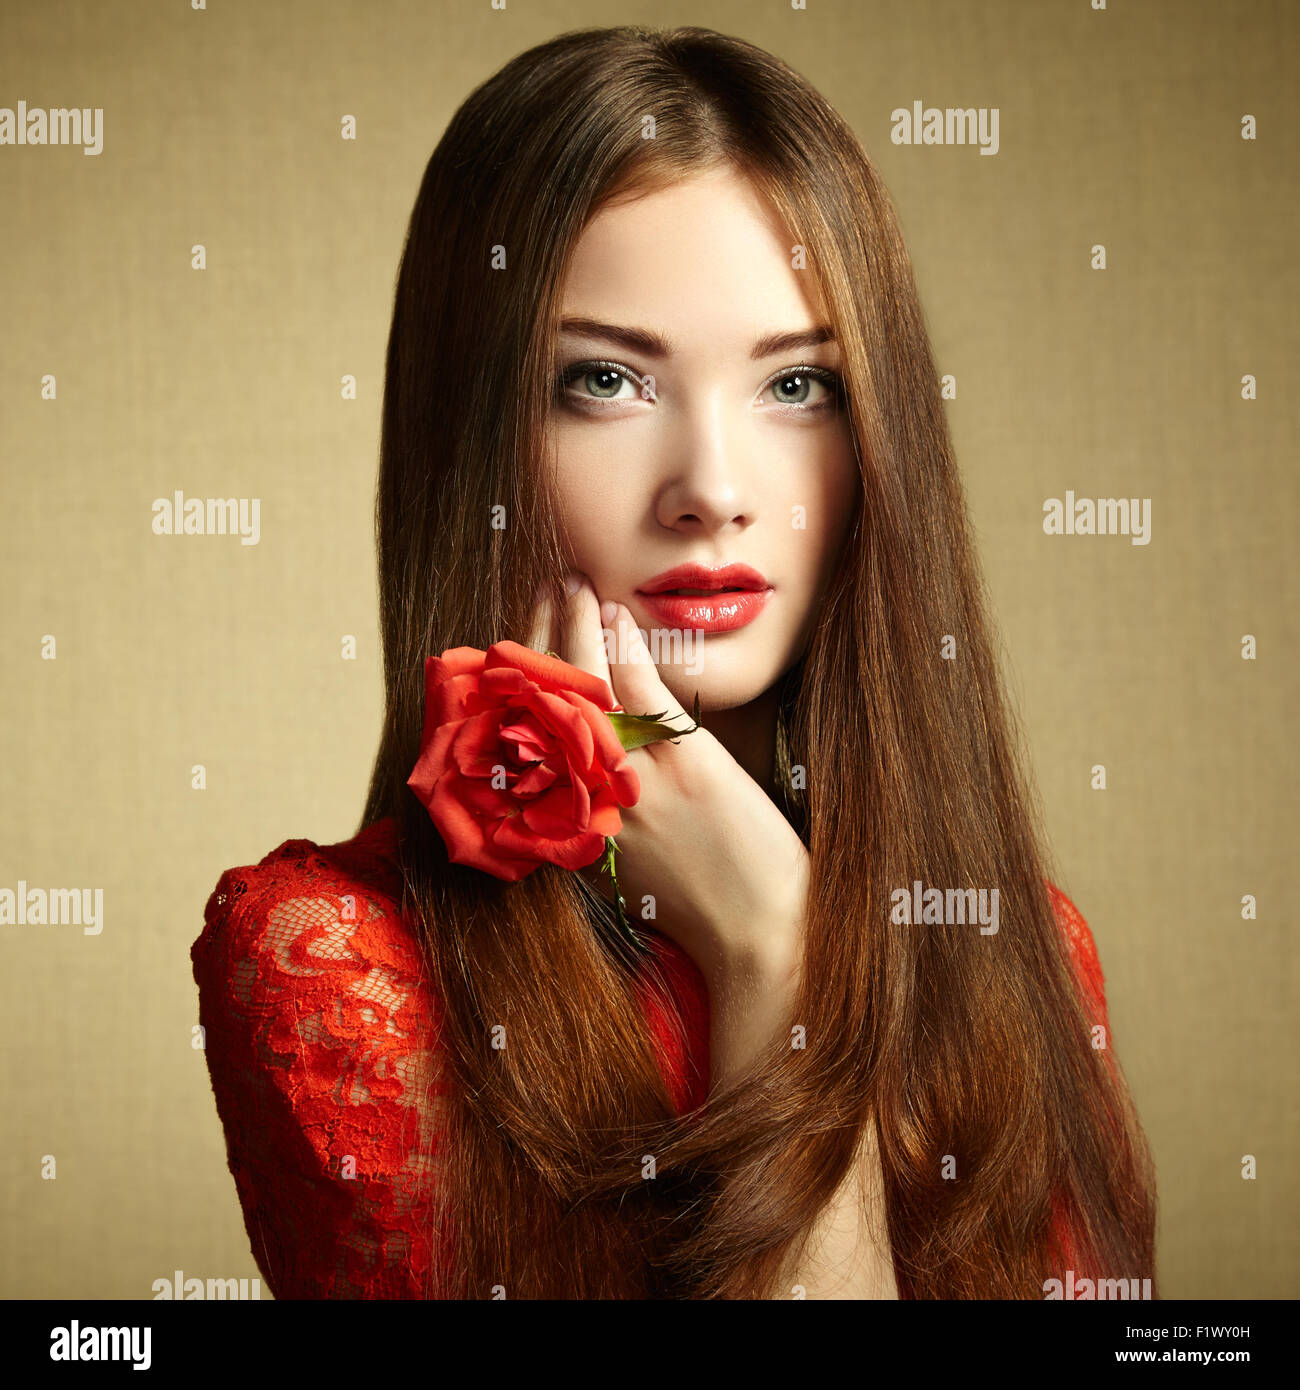 Great beautiful woman with flowers ideas wedding and flowers wonderful beautiful woman with flowers ideas wedding and flowers izmirmasajfo Image collections